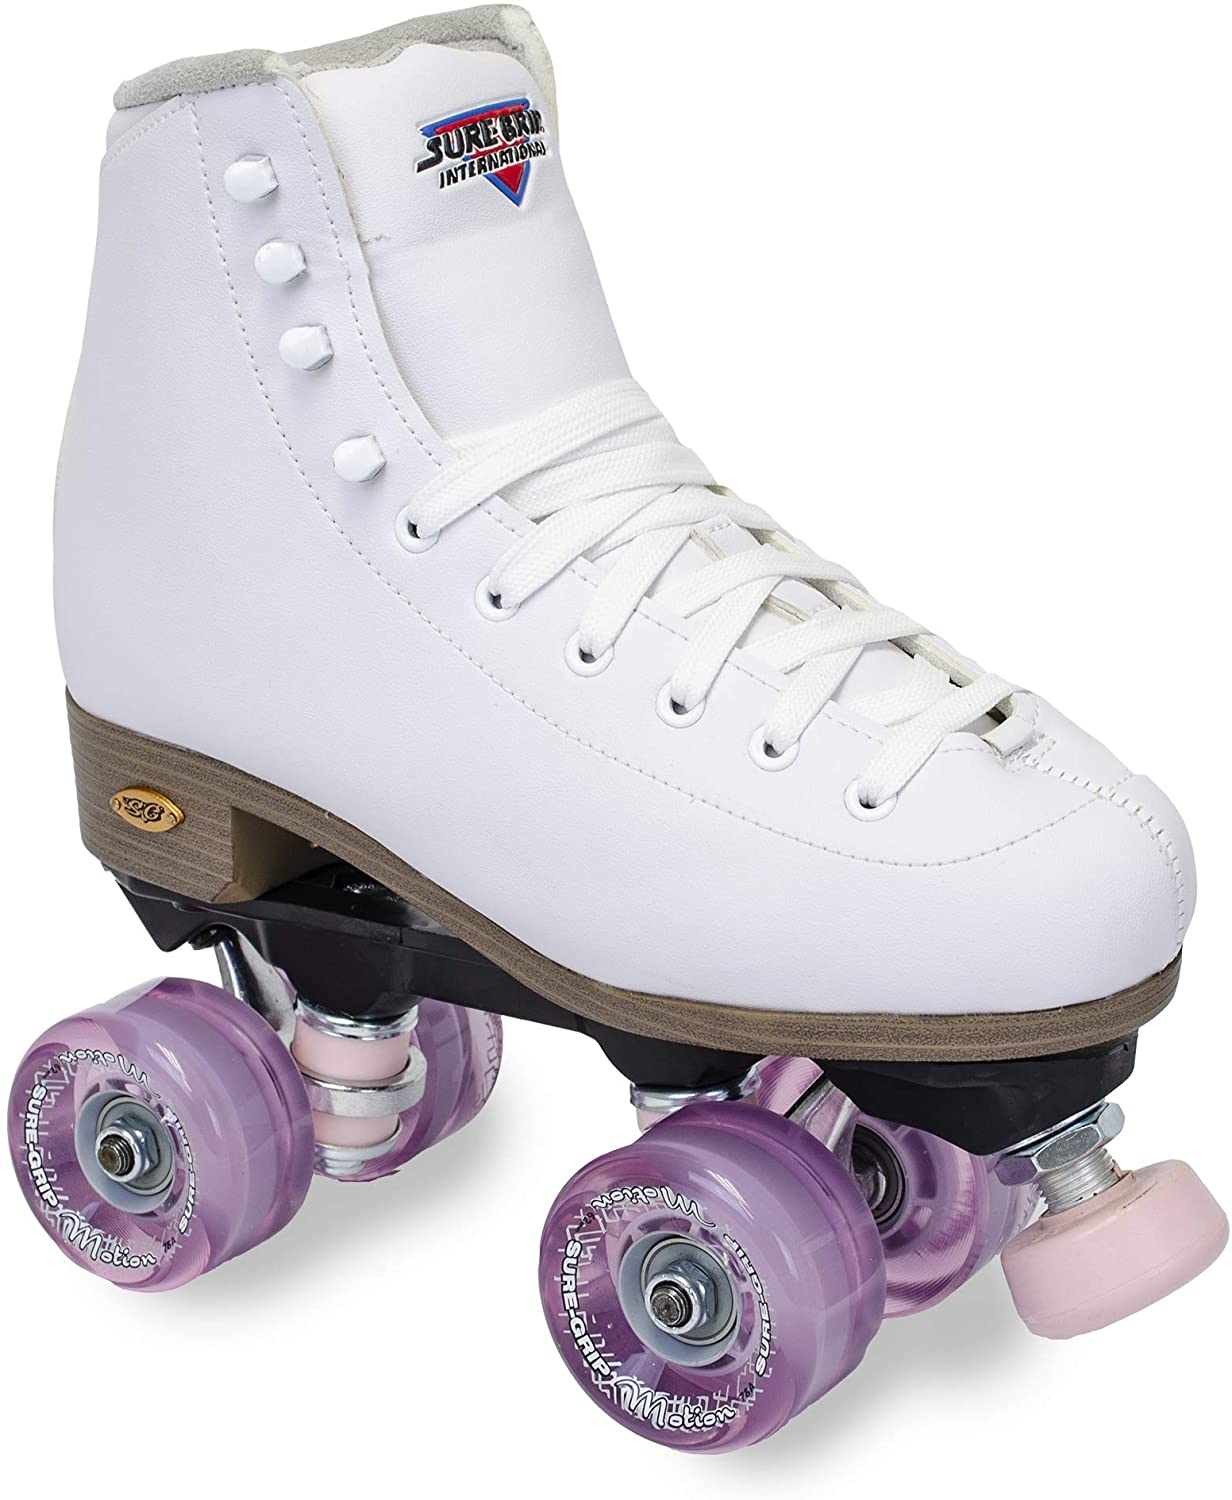 Sure-Grip White Fame Roller Skate Pink Motion Outdoor